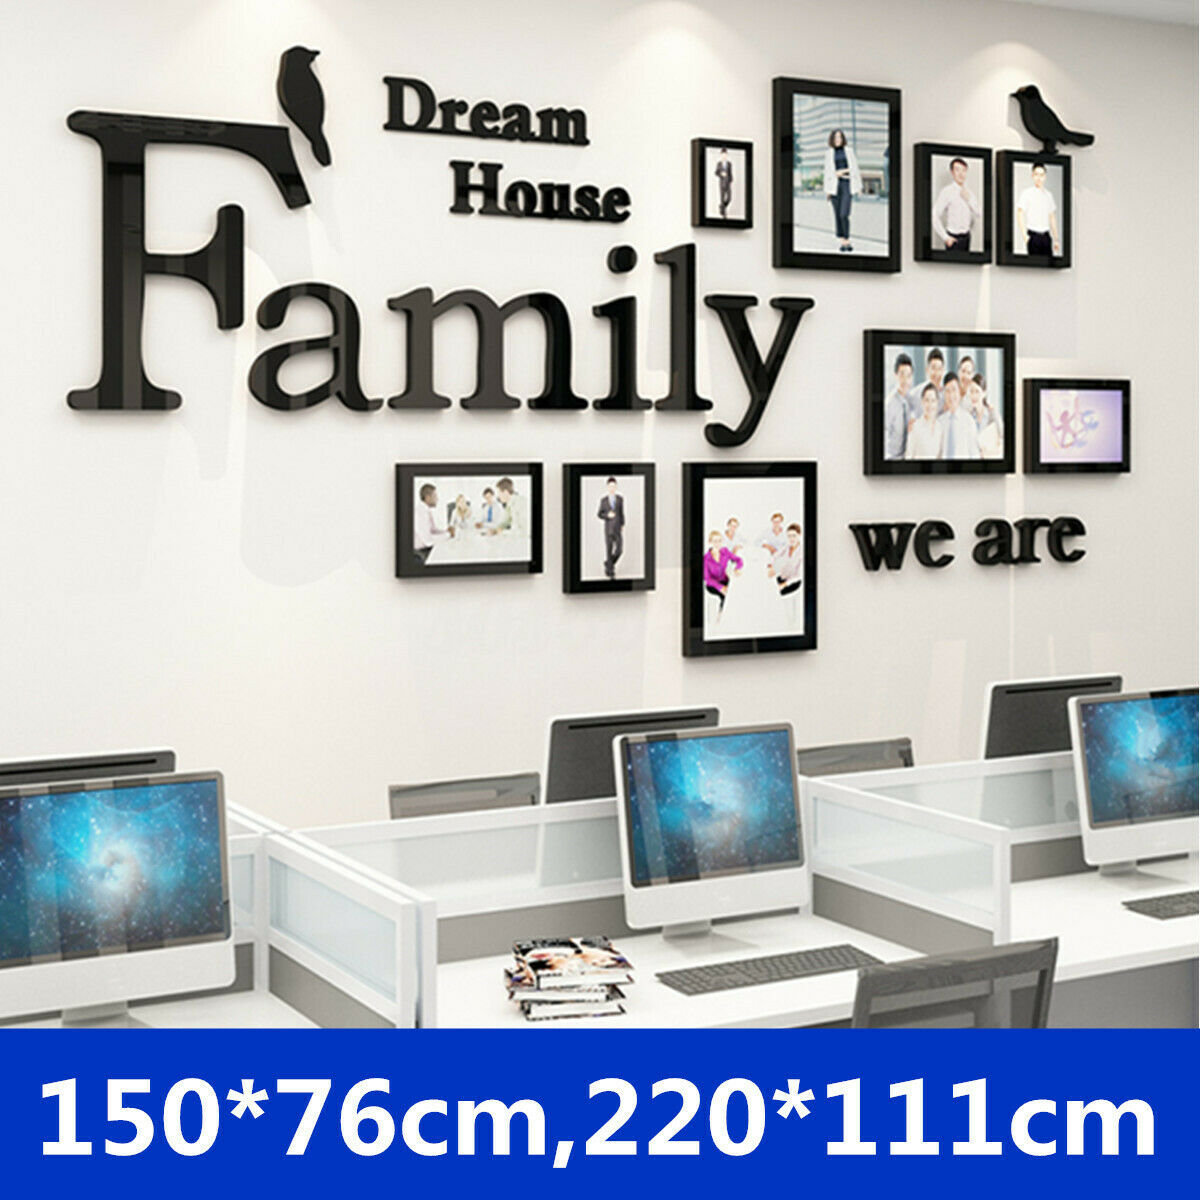 Home Decoration - 3D Photo Frame Wall Sticker Family Dream House Art Office Home Bedroom Decor